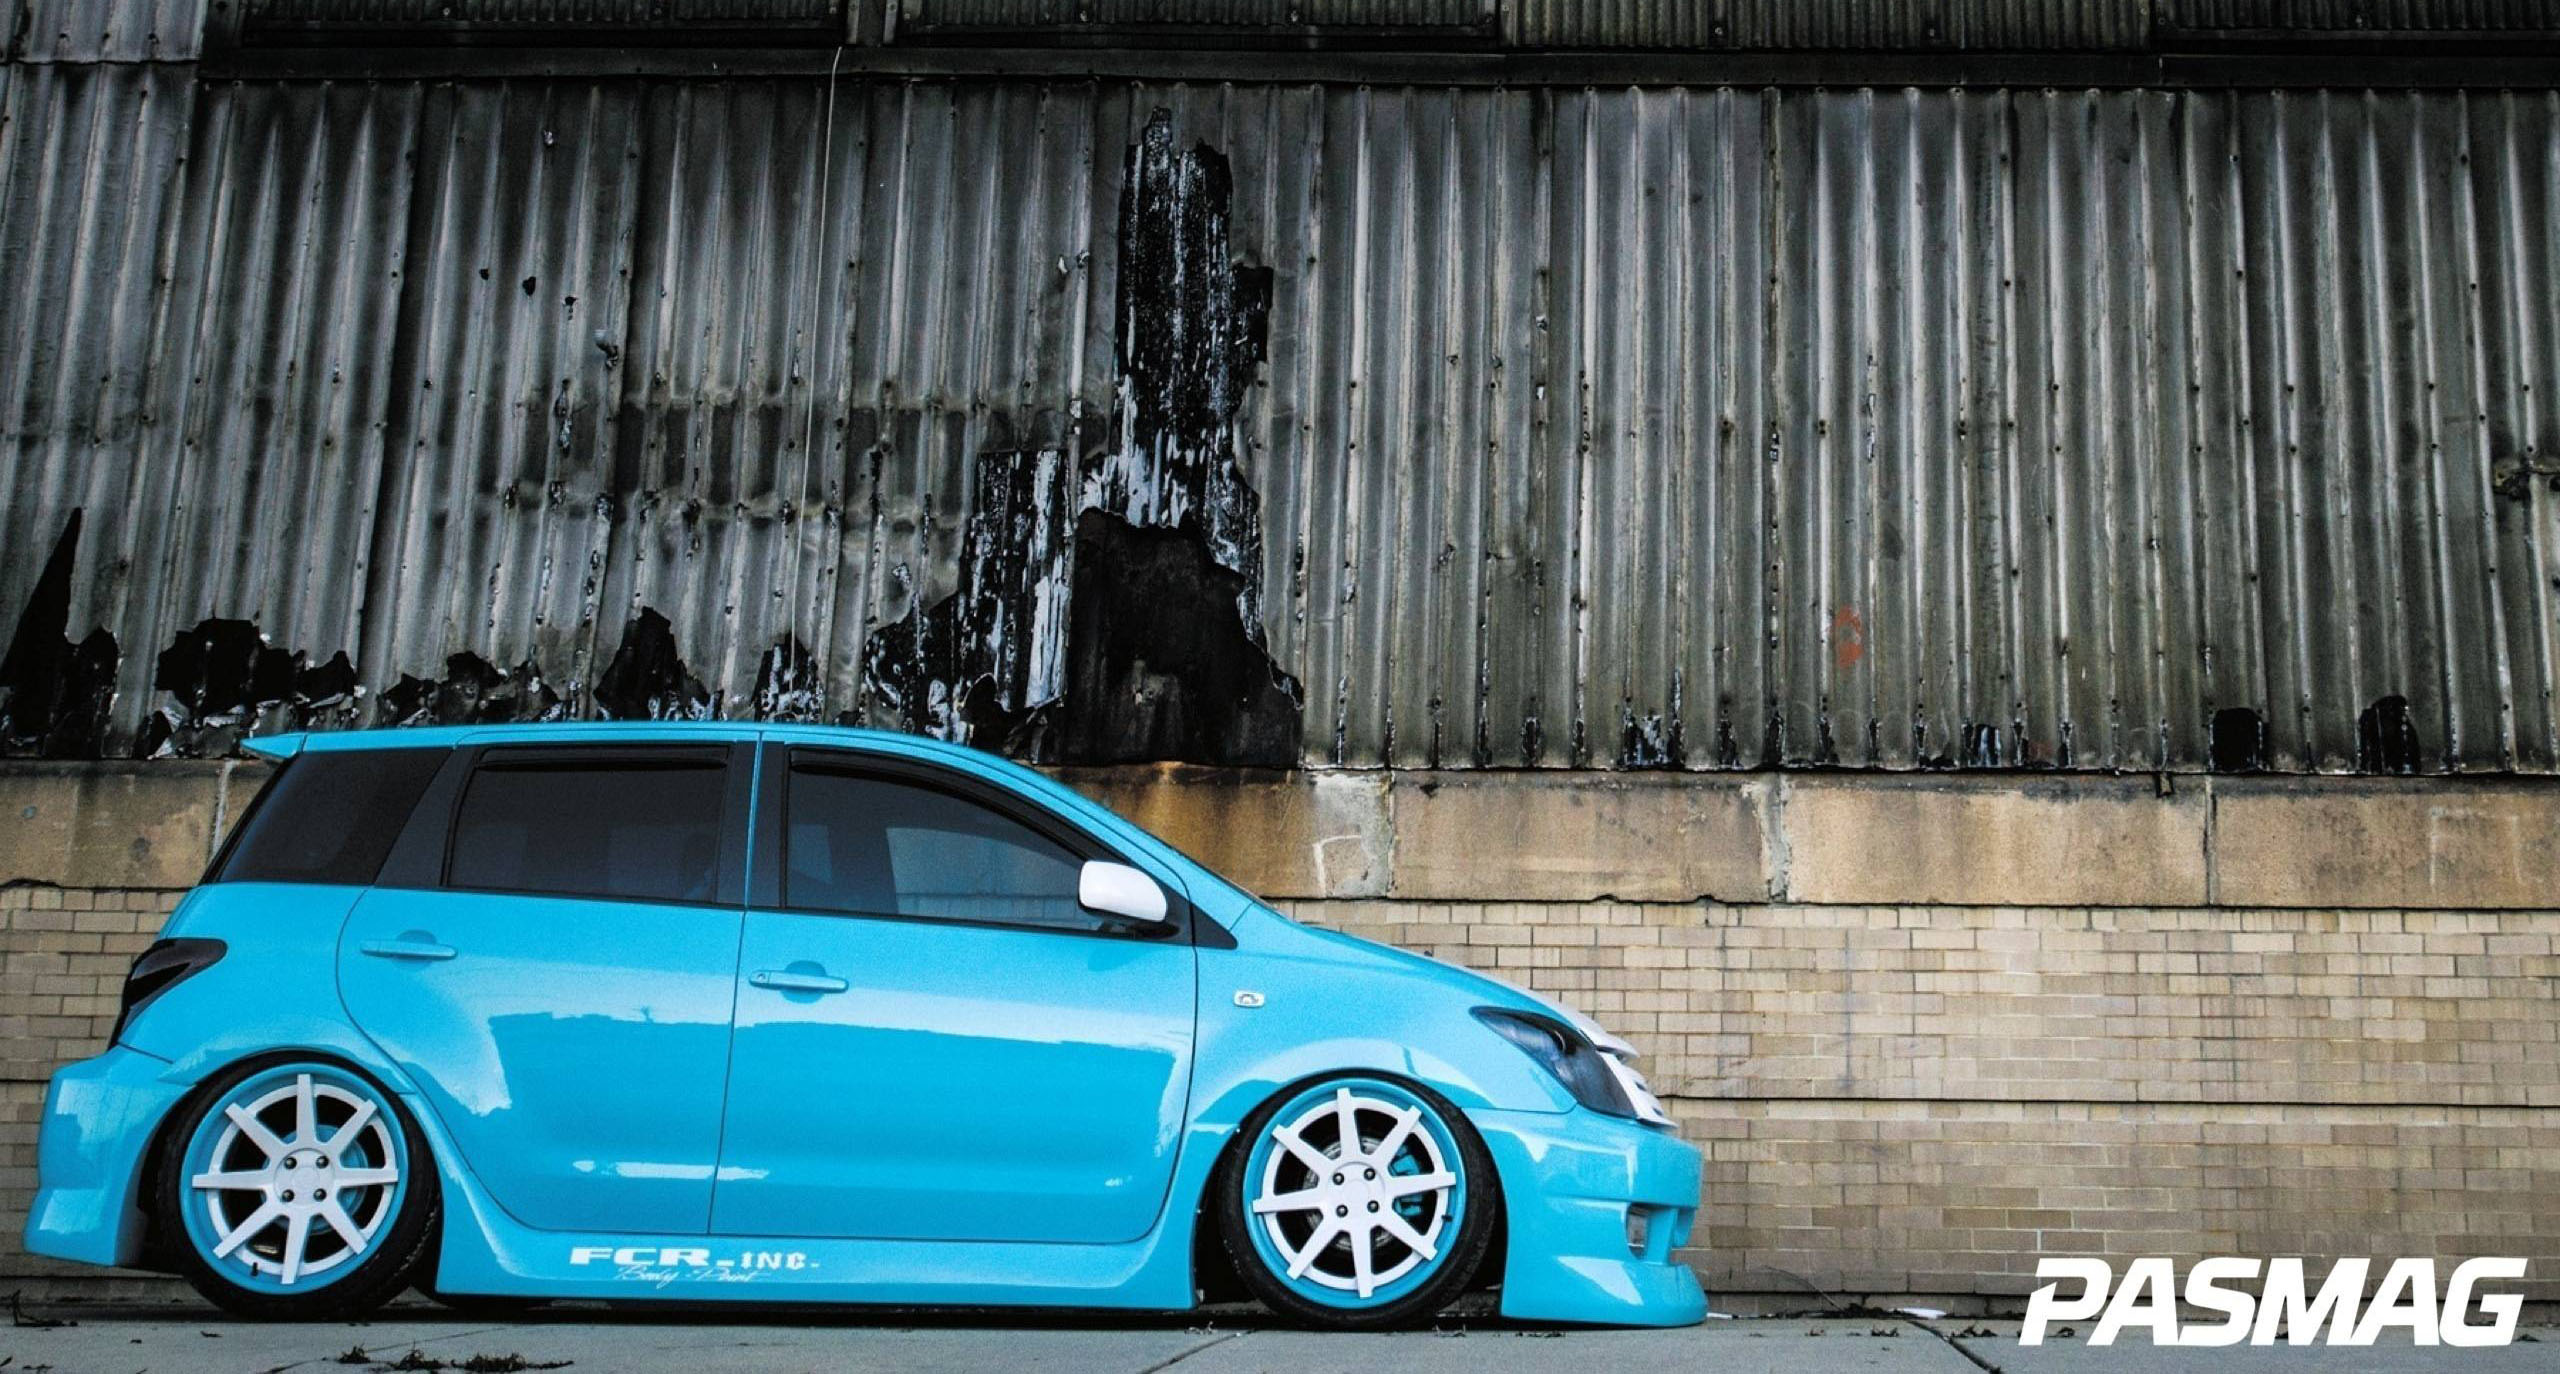 Pasmag Performance Auto And Sound The Peoples Champion Salik Ppg Red Paint Code Honda Civic Codes Pioneer Car Radio Wiring All In Family Zakis Scion Xa